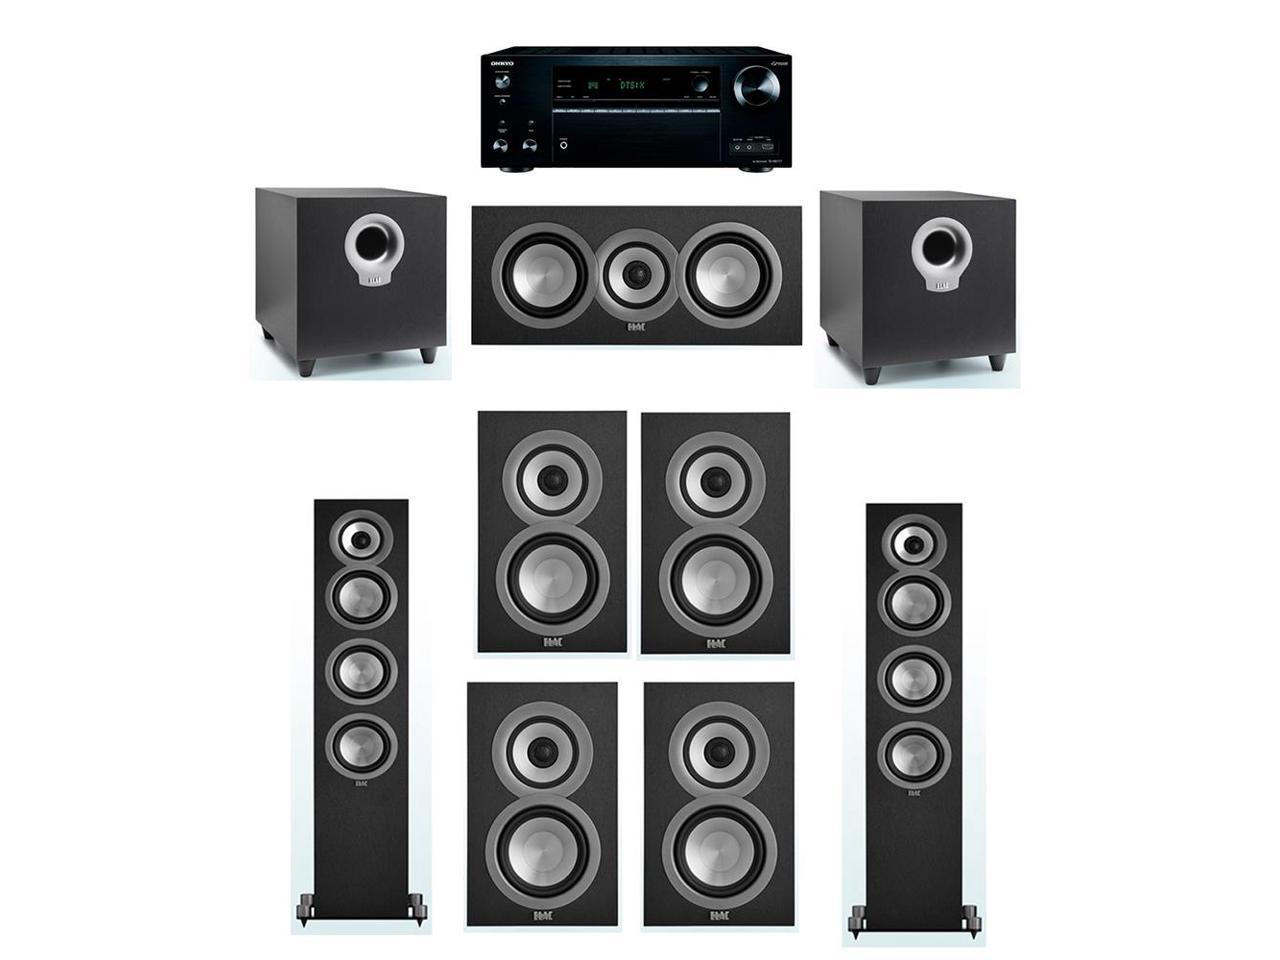 ELAC Uni-Fi 7.2 System with 2 UF5 Floorstanding Speakers, 1 UC5 Center Speaker, 4 UB5 Speaker, 2 ELAC Debut S10 Powered Subwoofer, 1 Onkyo TX-NR777 A/V Receiver